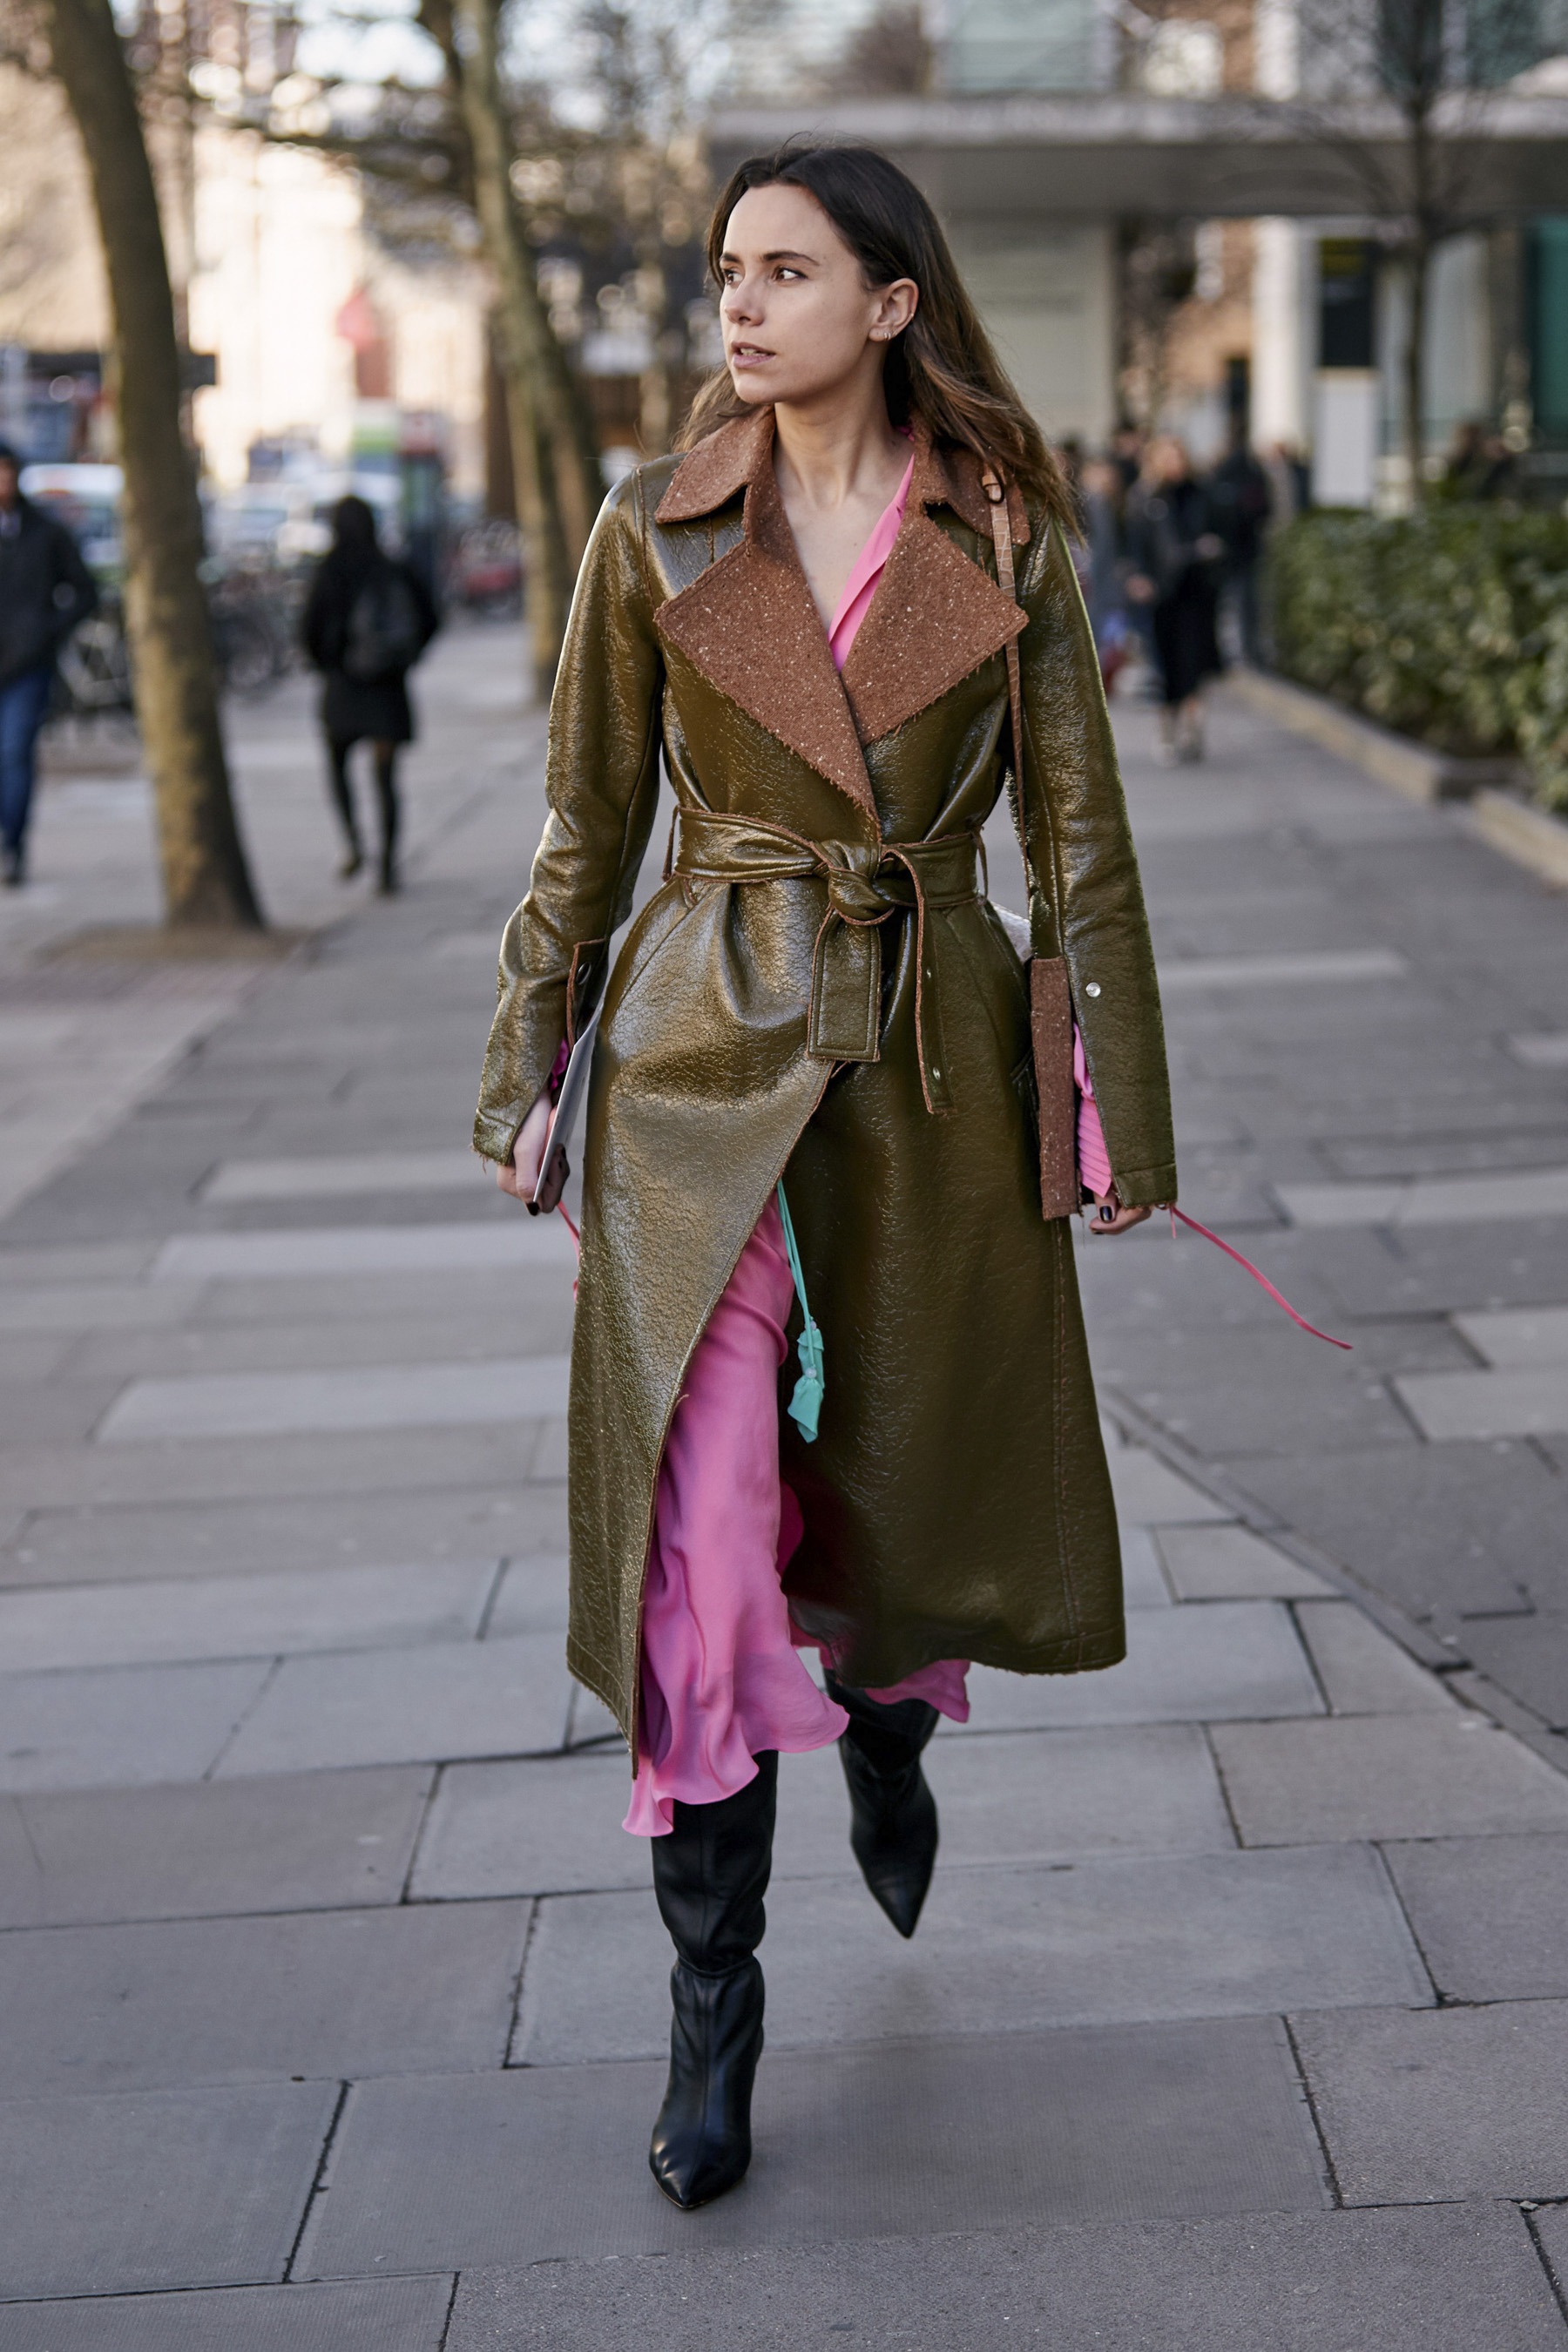 London Street Day 5 Bis Fall 2019 Fashion Show